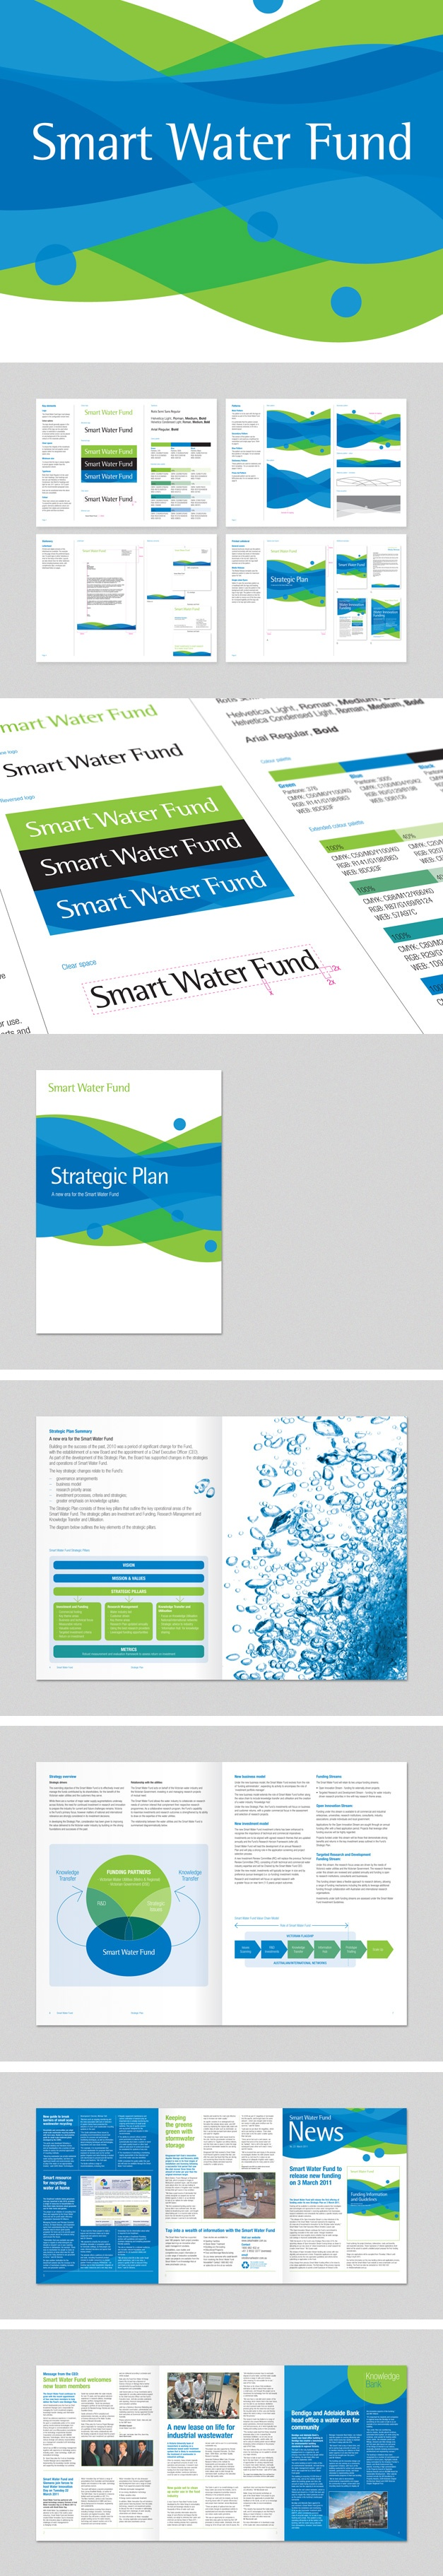 Branding, guidelines and collateral for the Smart Water Fund. www.fenton.com.au #communication #PR #branding #graphicdesign